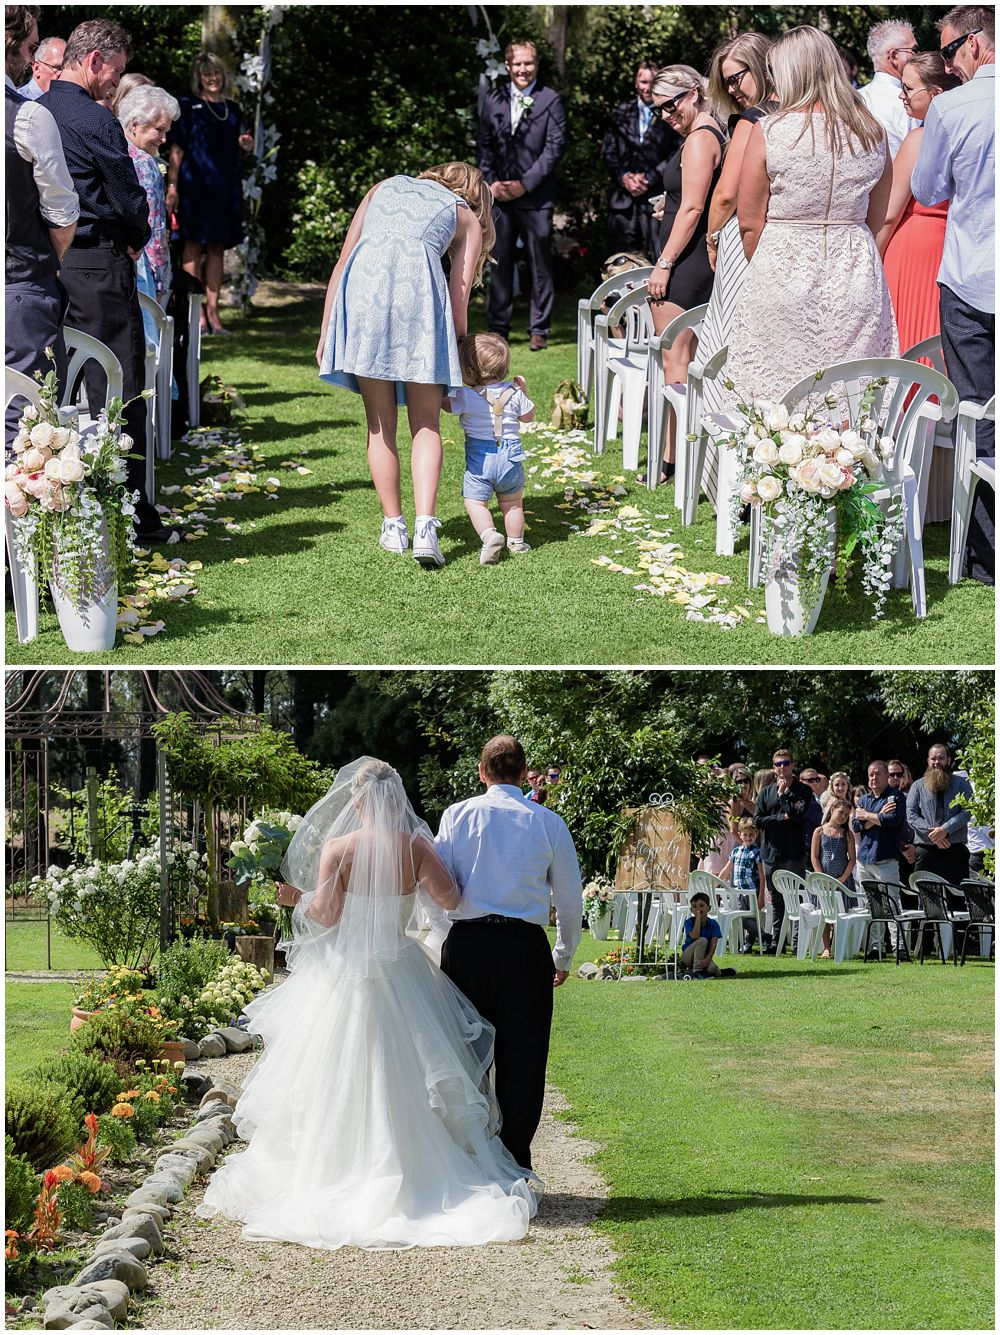 Flower girl and couple's son walk down the aisle